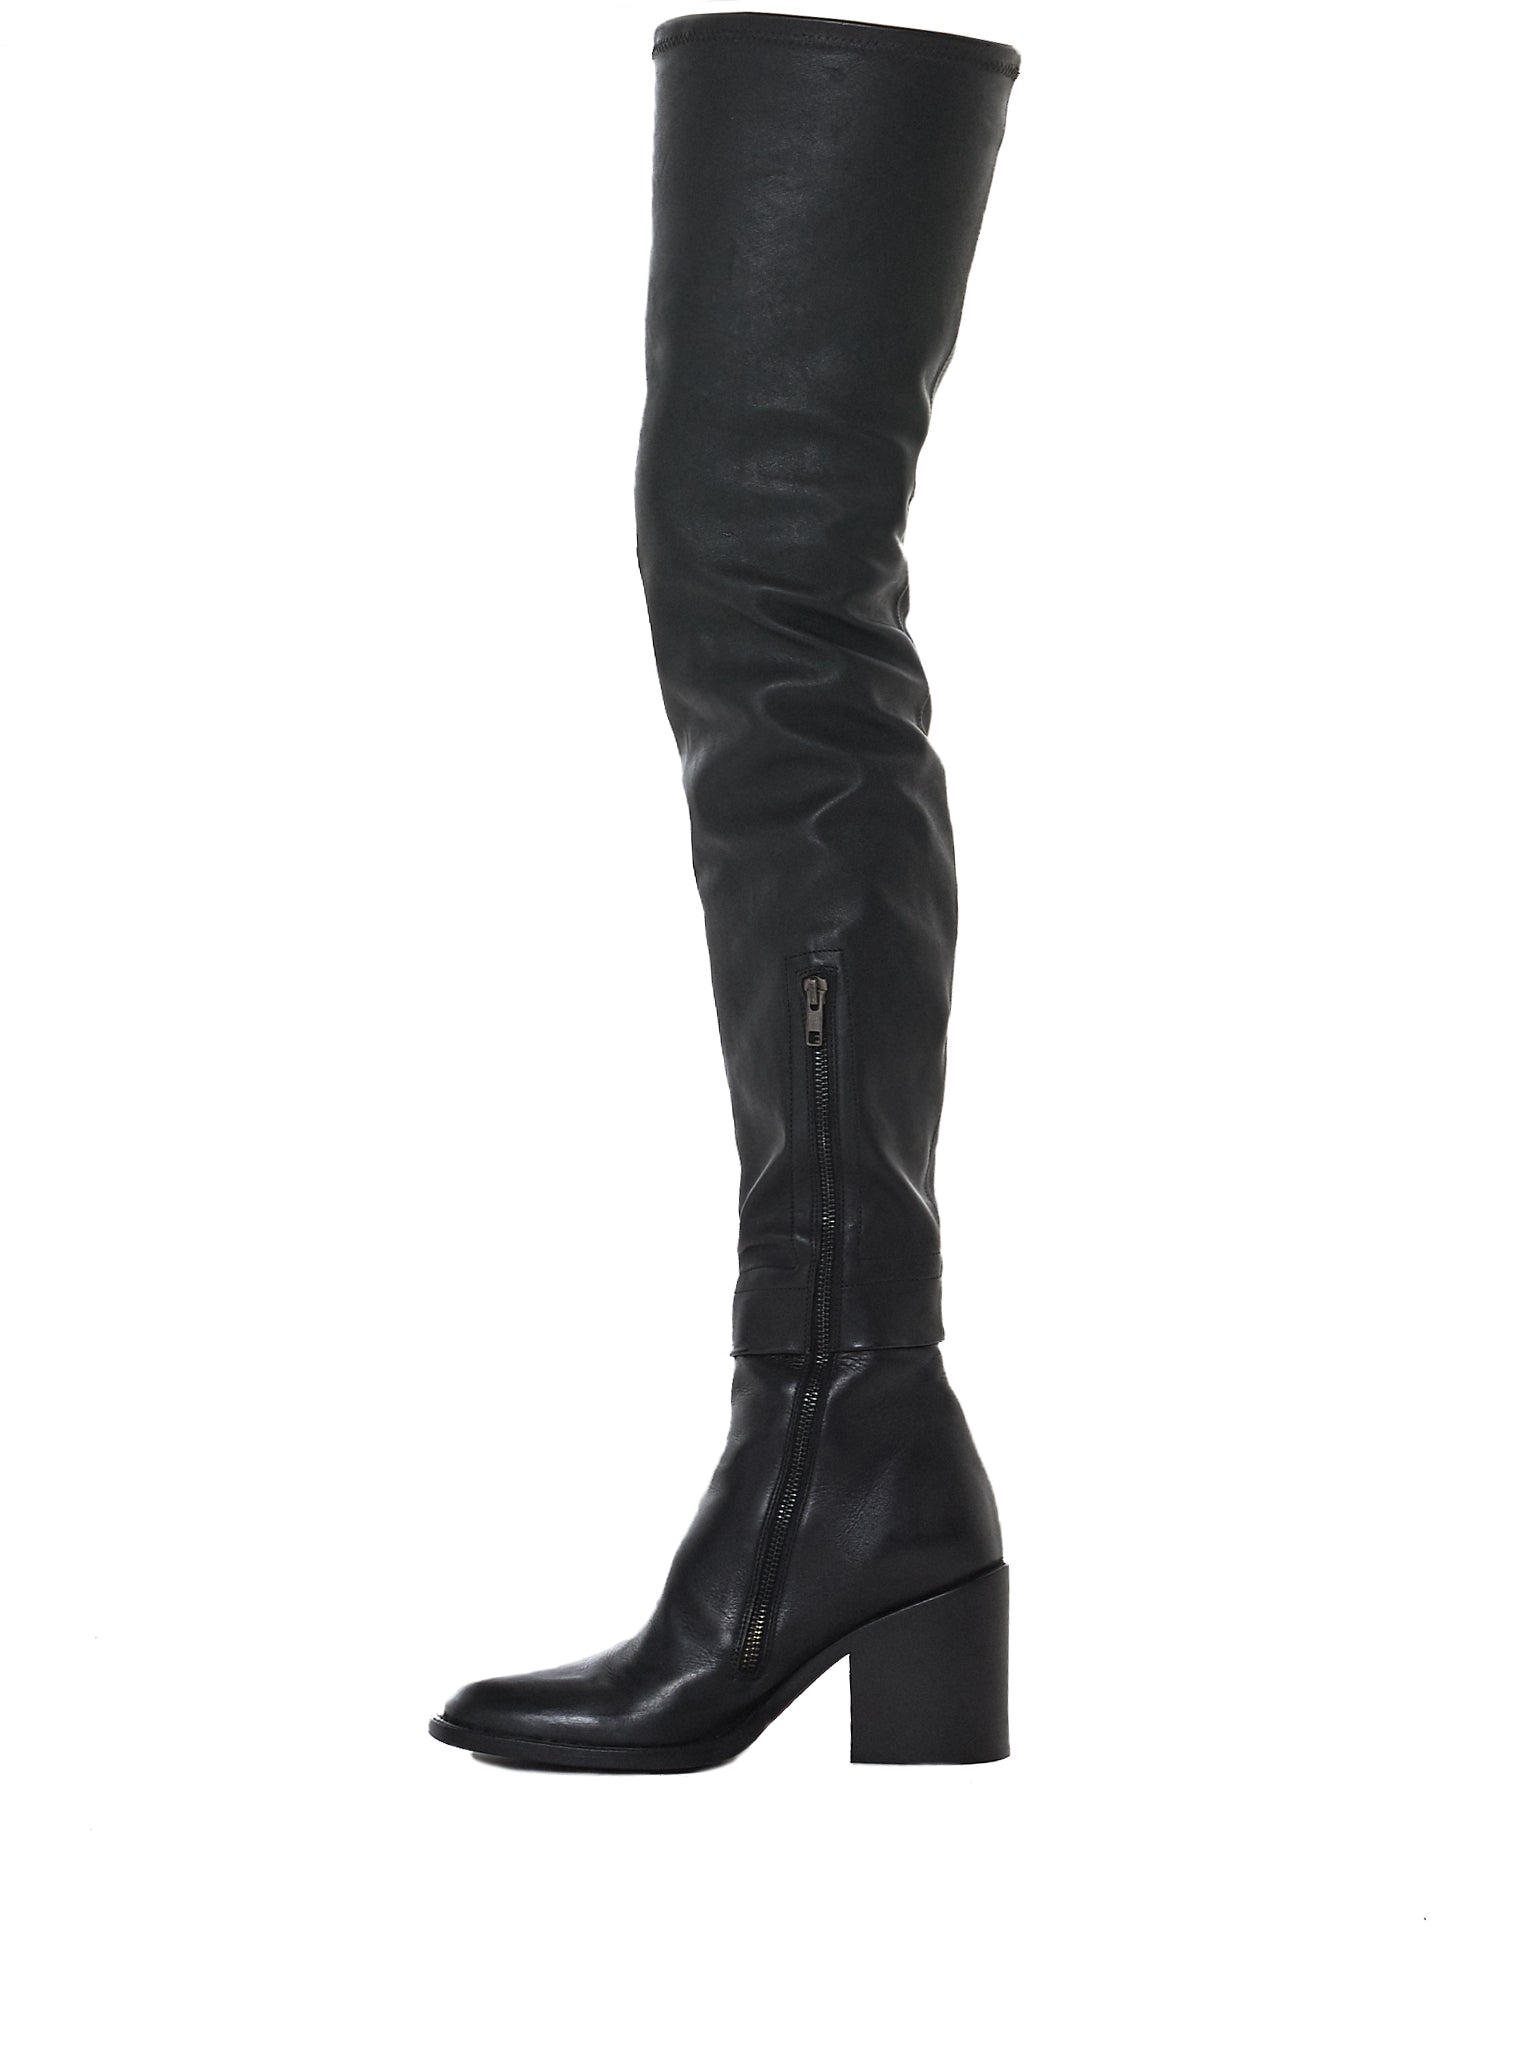 Ann Demeulemeester-HLorenzo side boot view